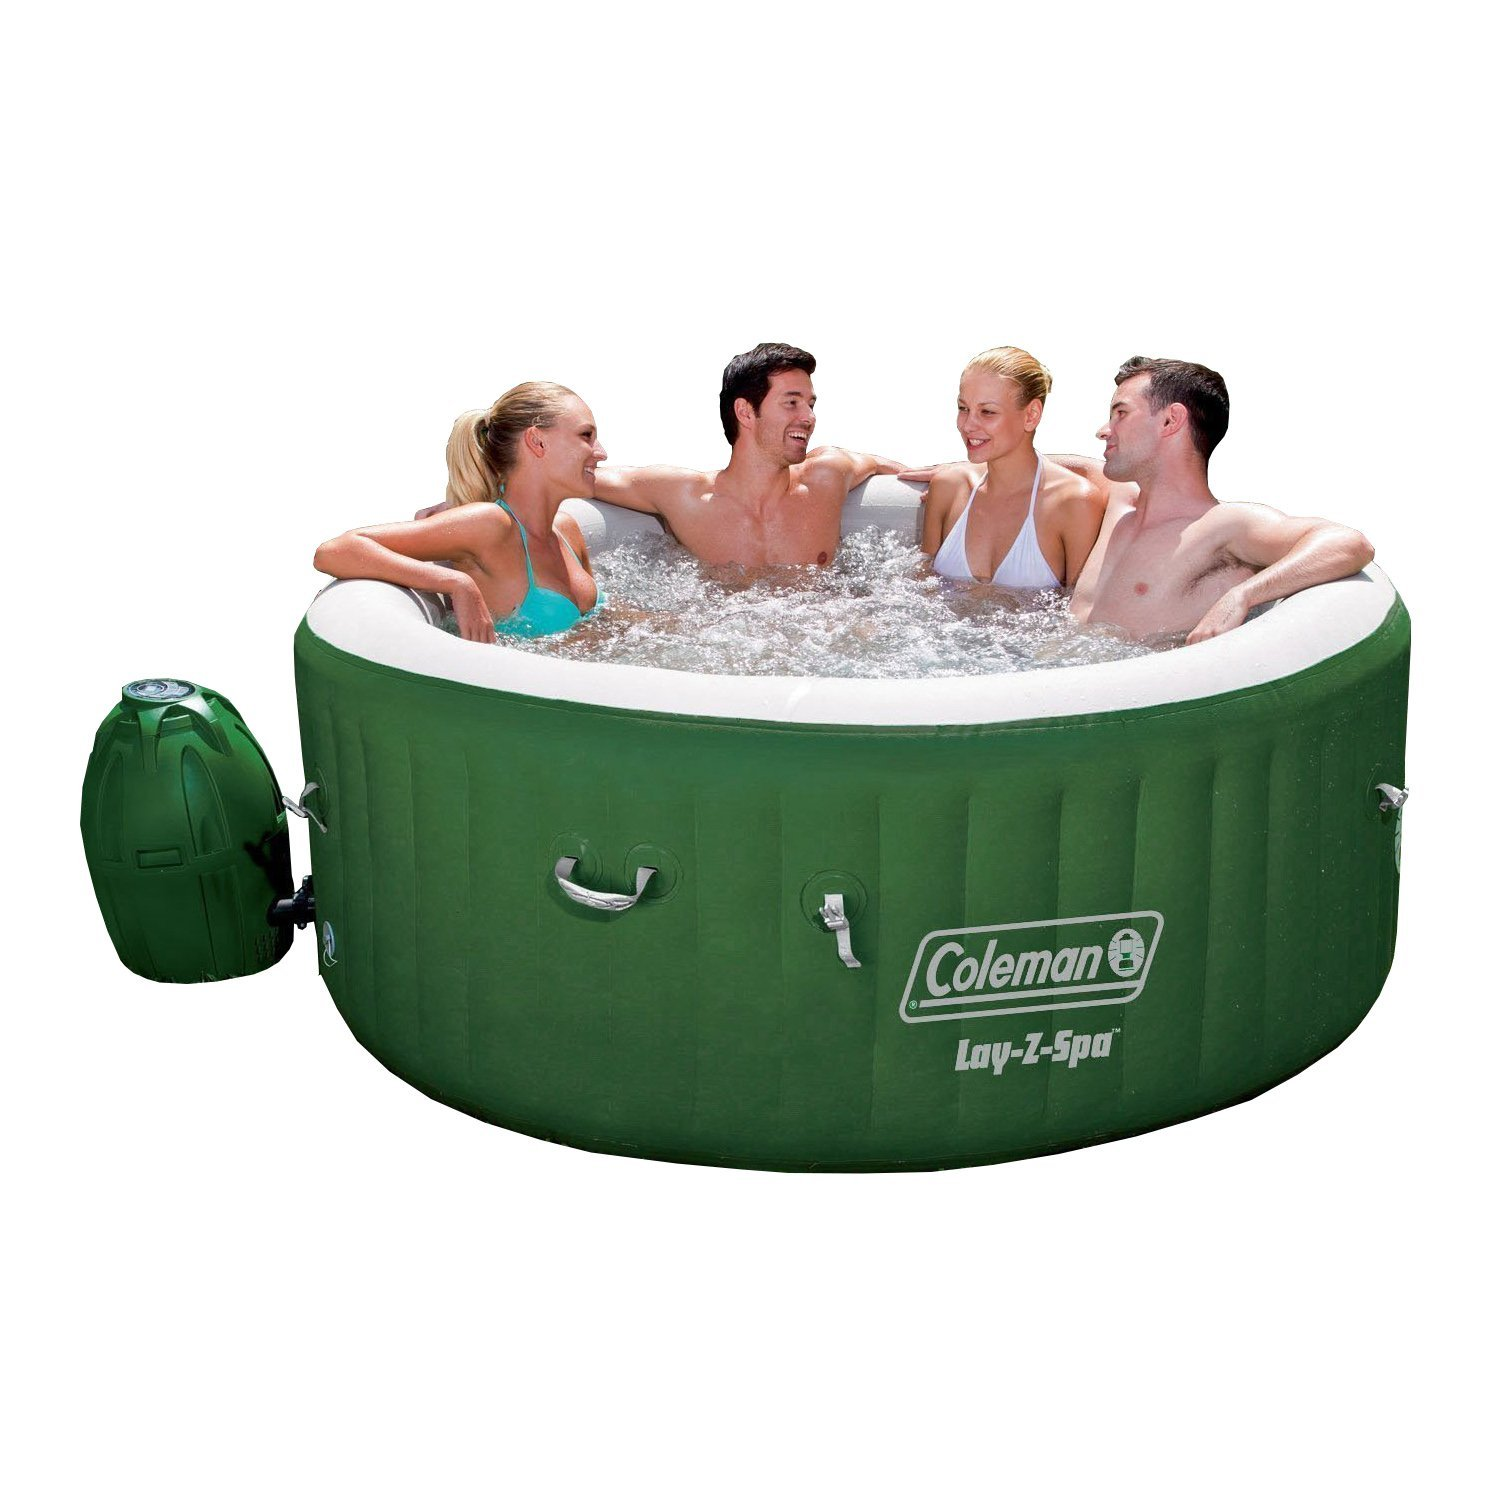 Best Four Person Hot Tub Reviews in 2018